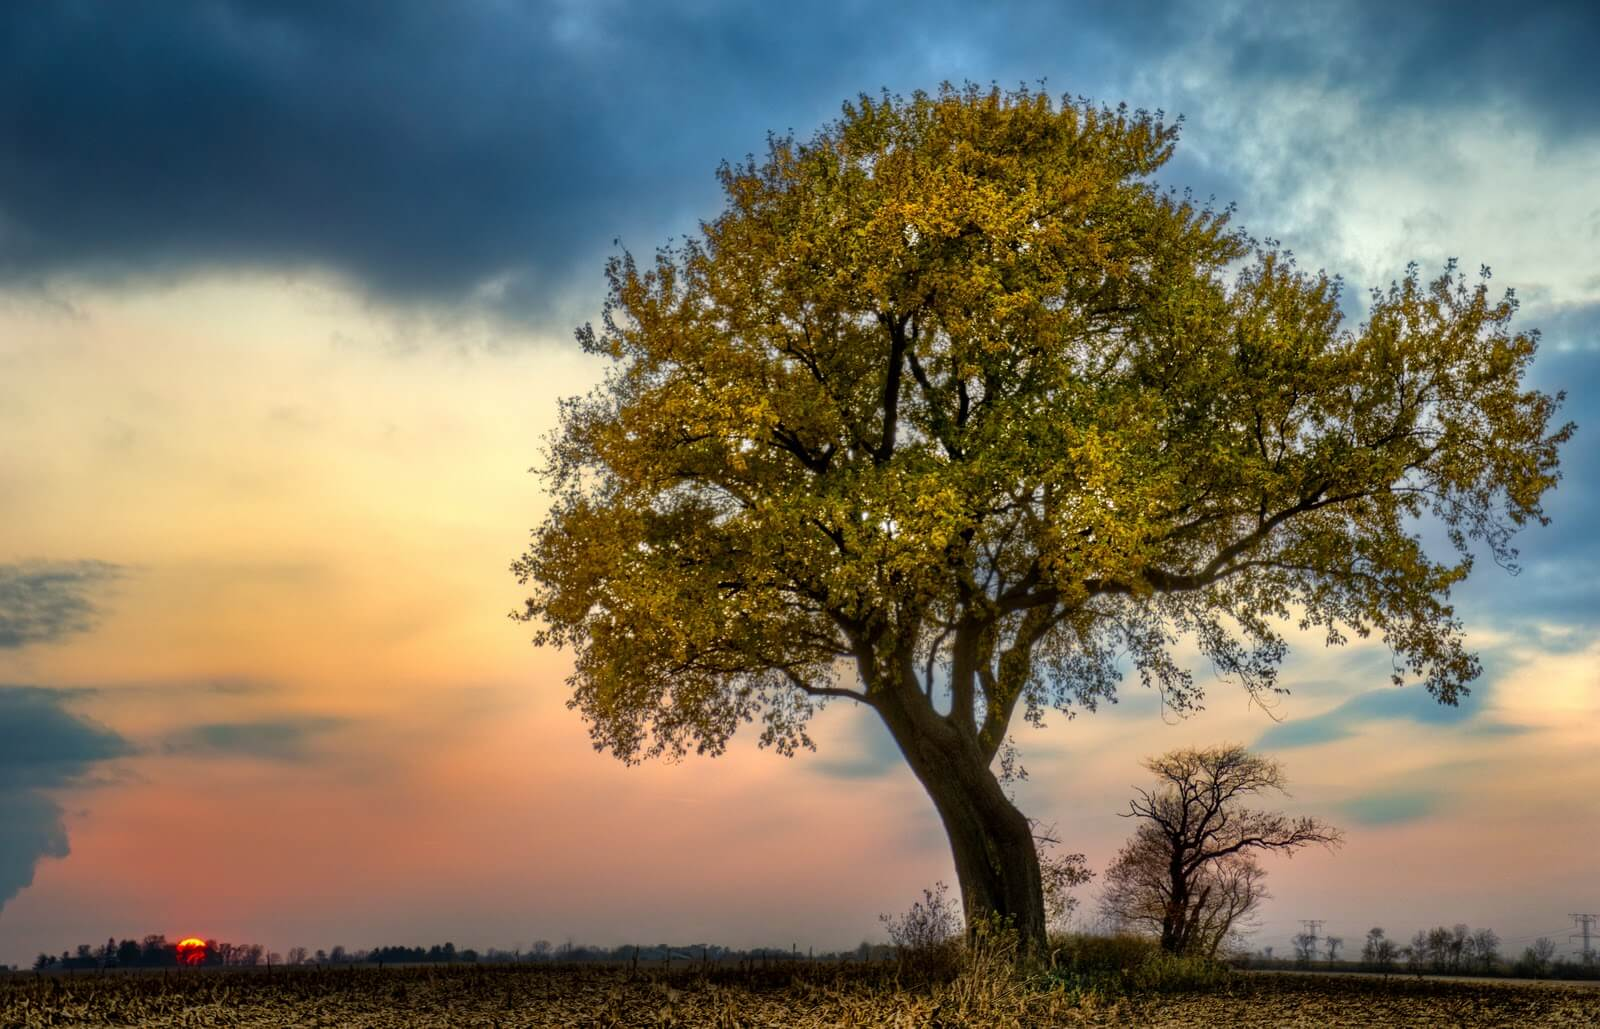 Here Are 12 Stunning Illinois Sunsets Photos That Will Leave You In Awe